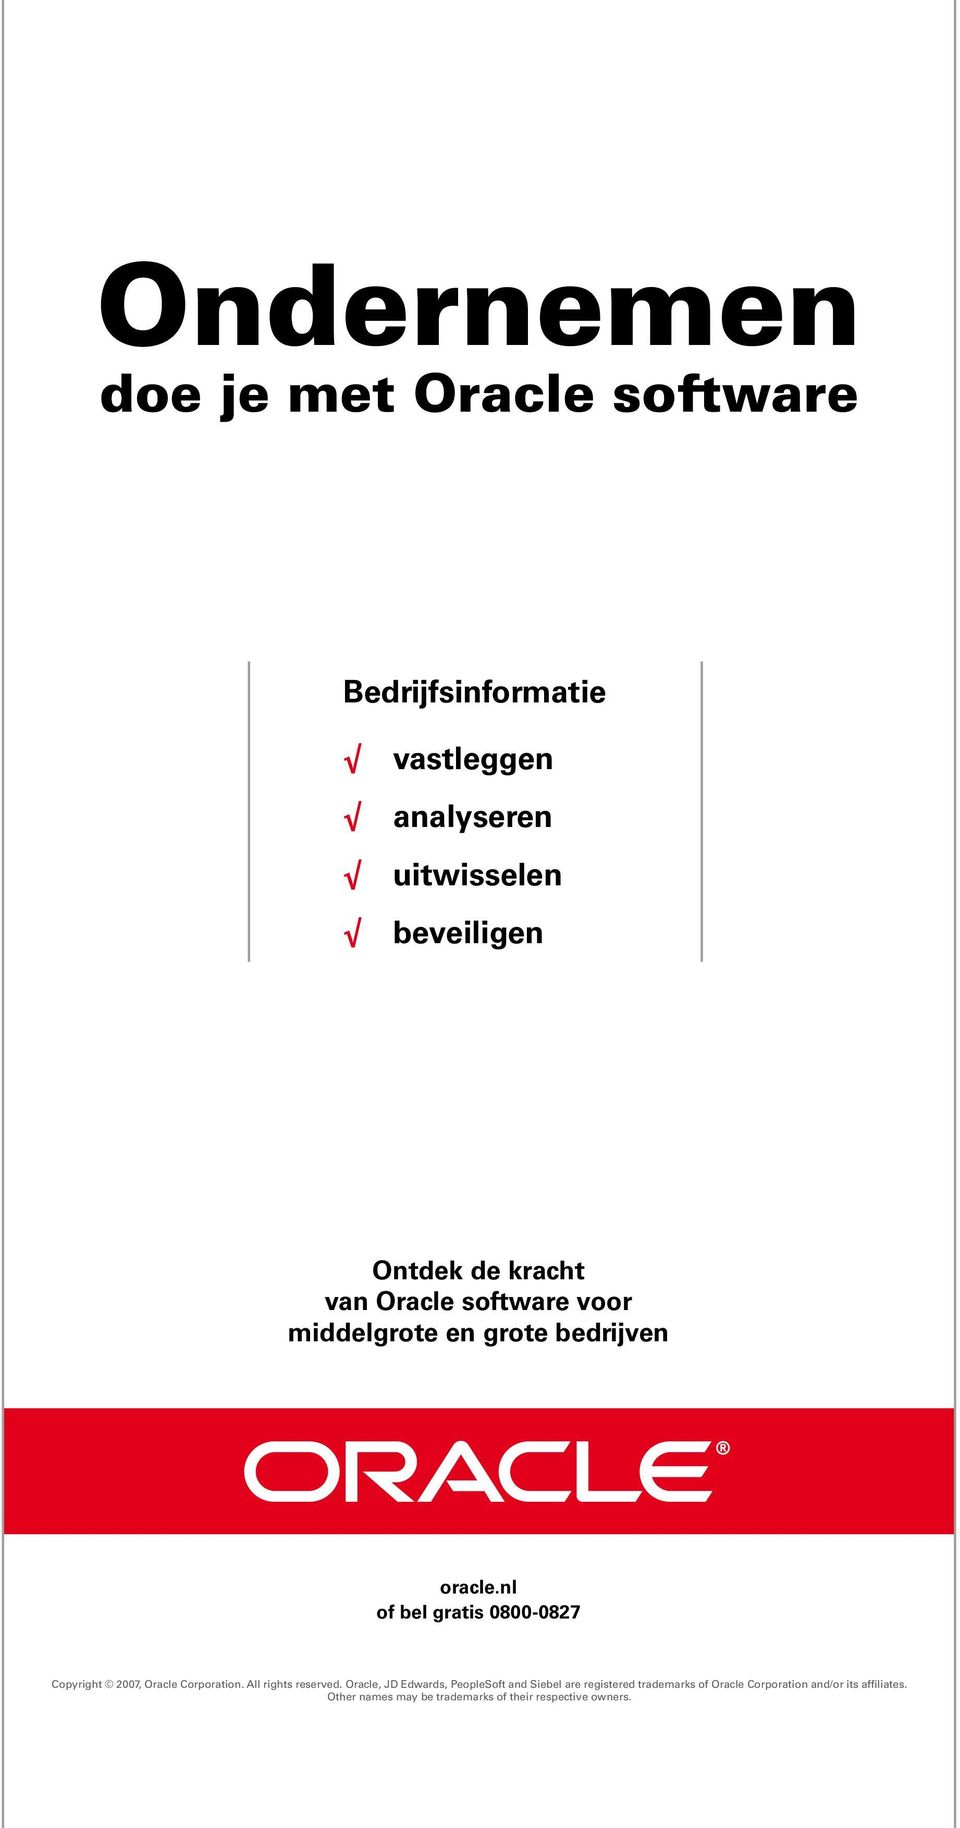 nl of bel gratis 0800-0827 Copyright 2007, Oracle Corporation. All rights reserved.